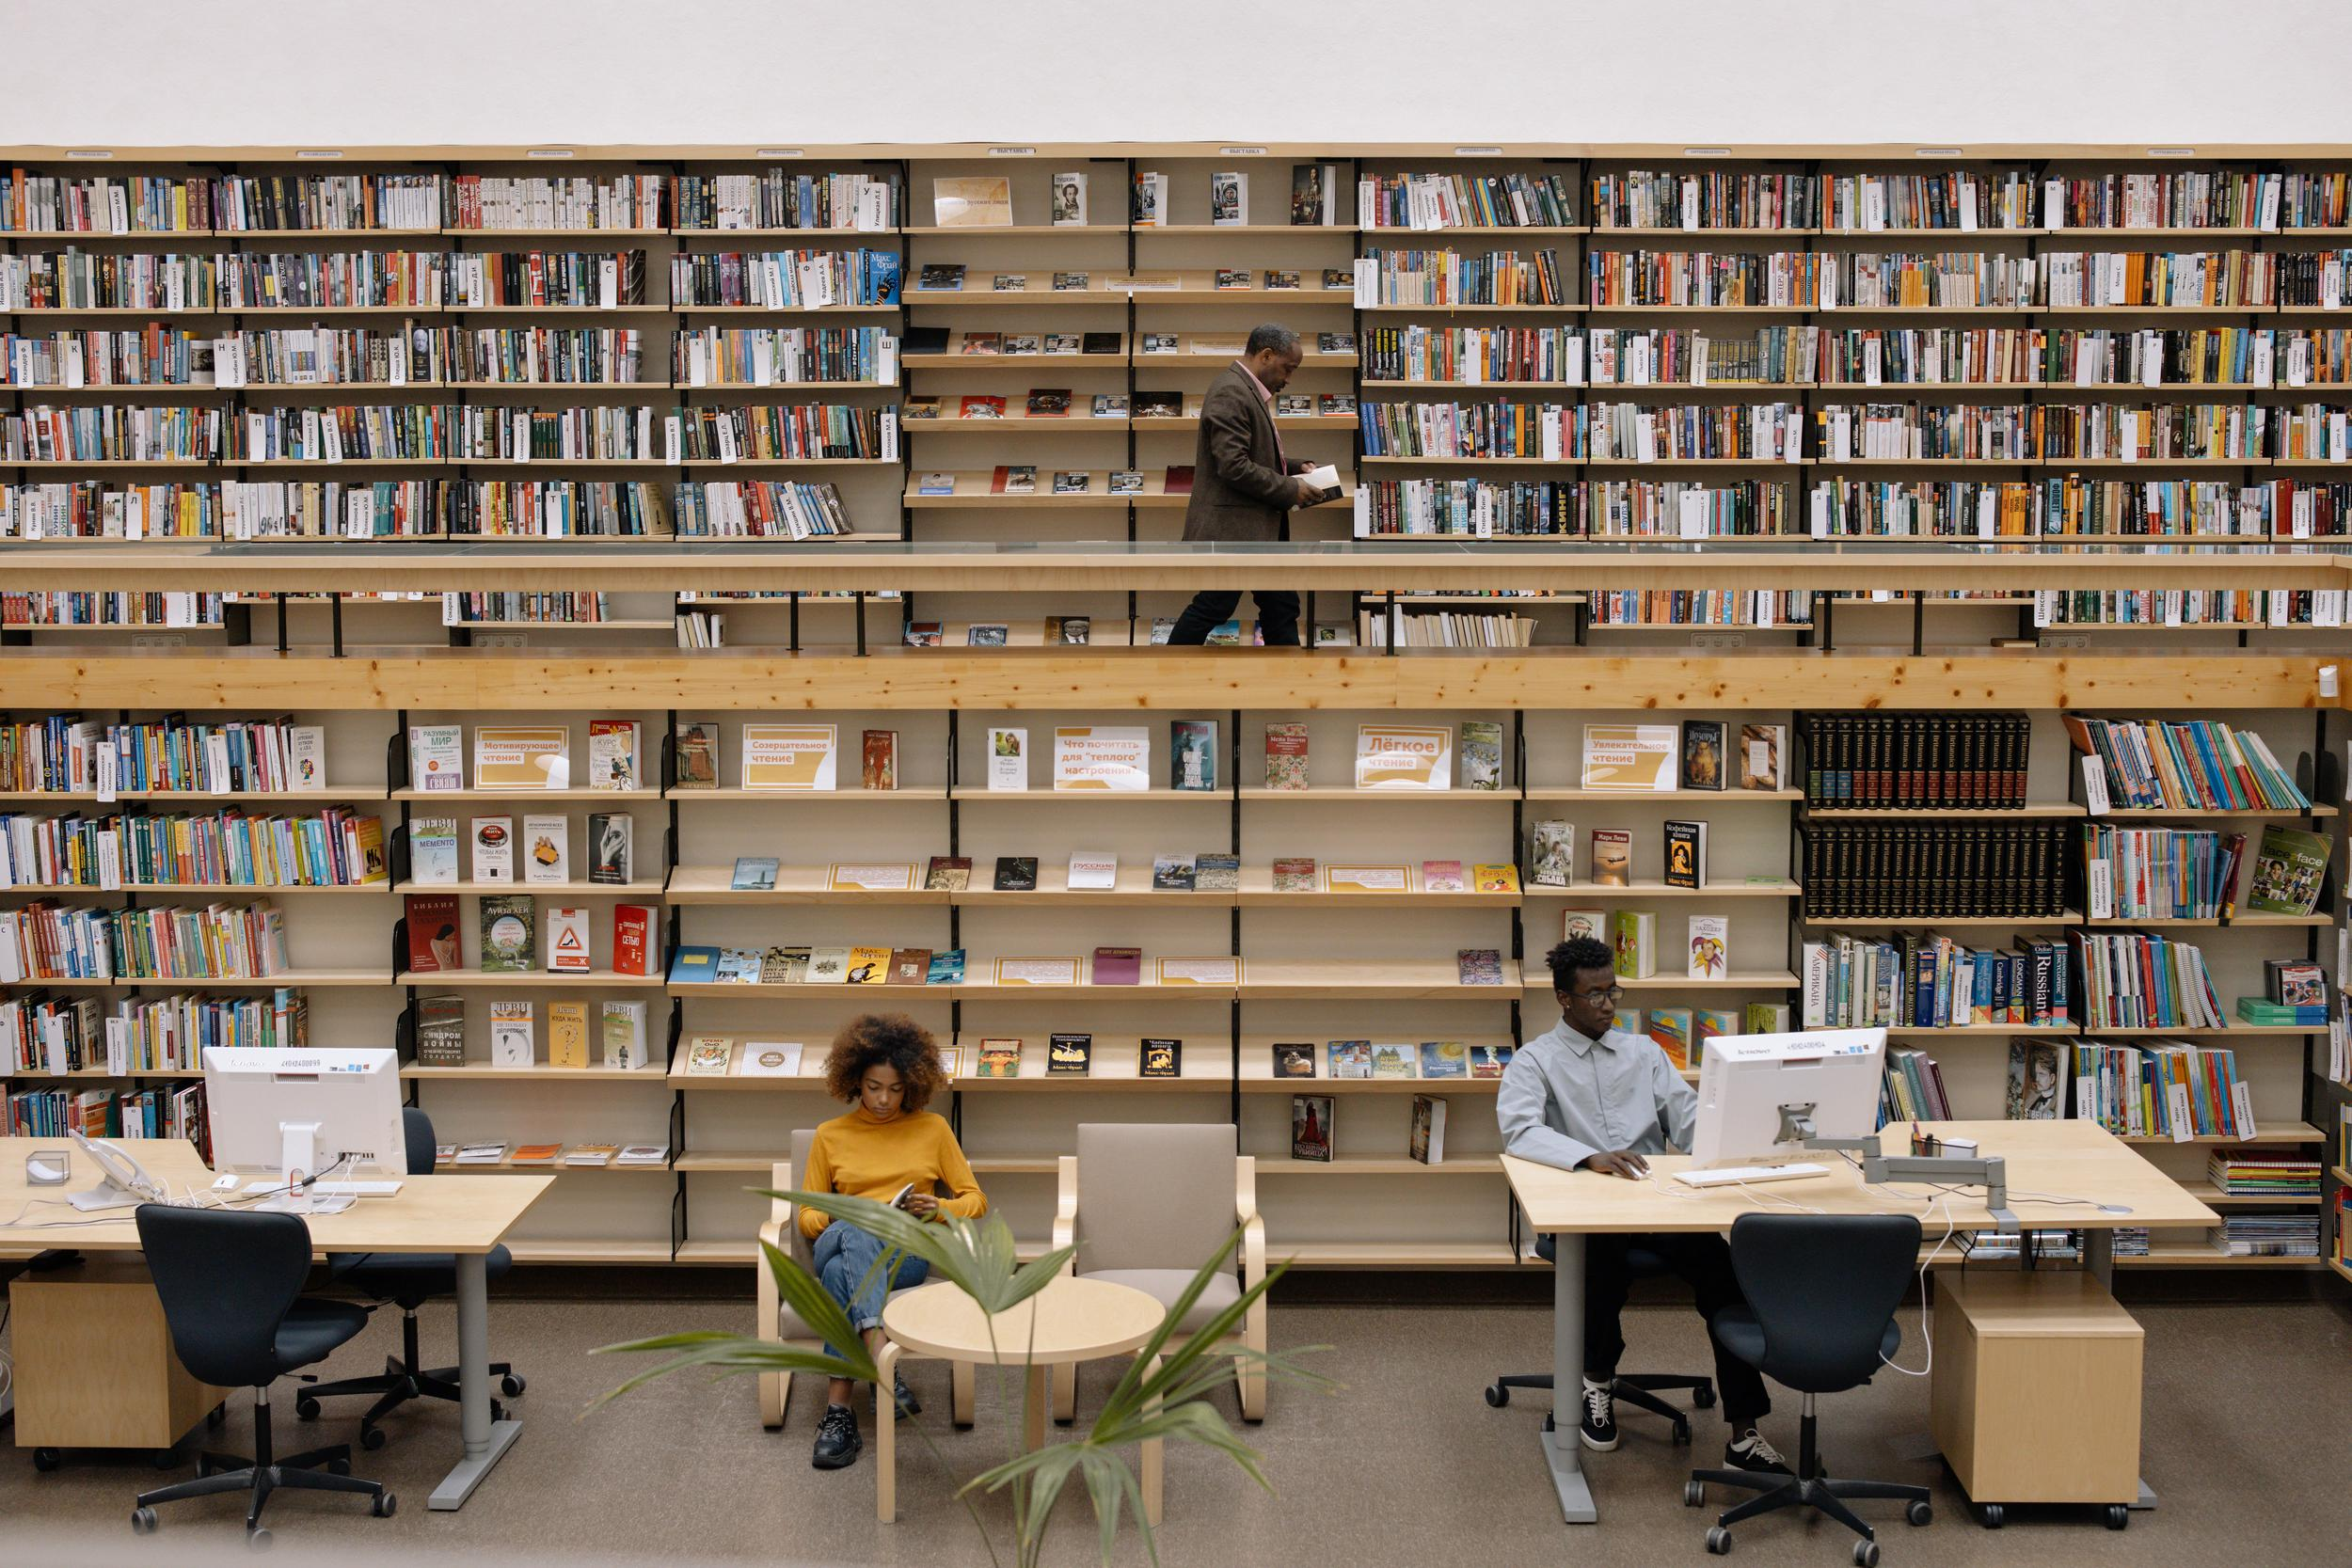 people working in a library